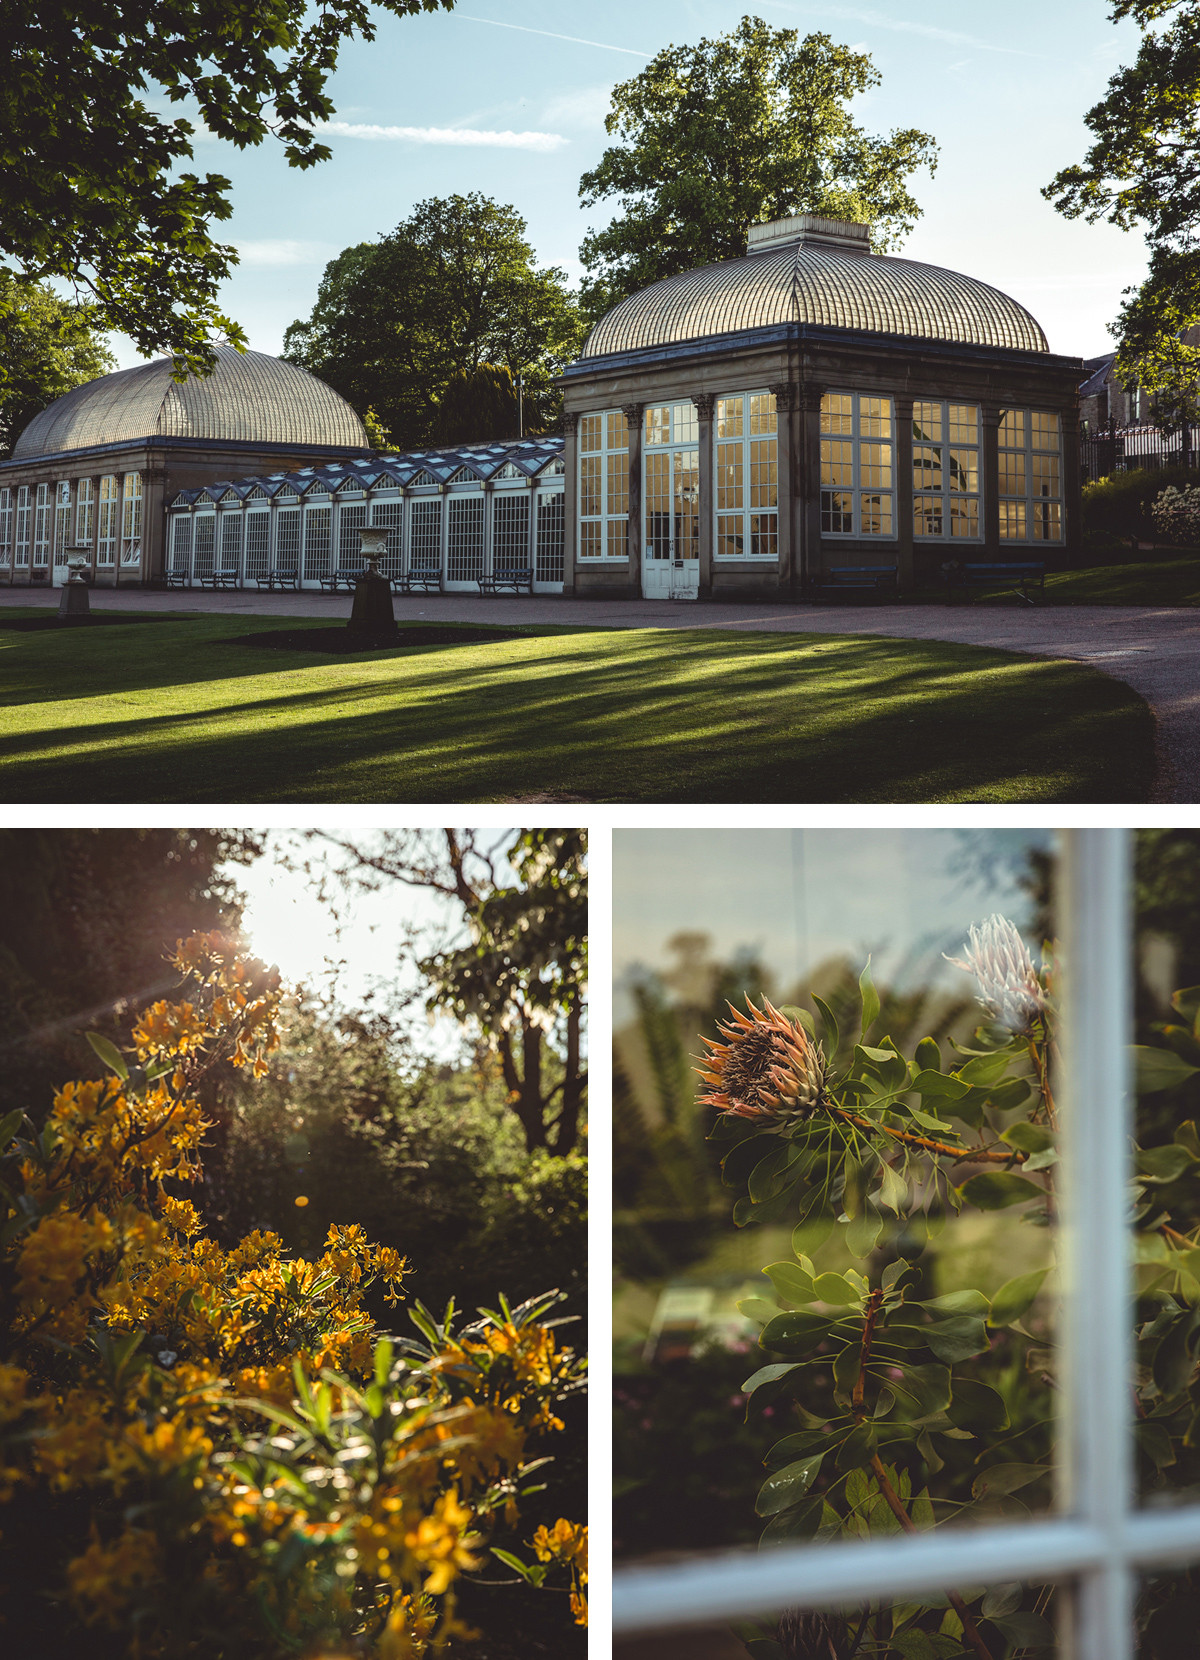 Sheffield-Botanical-Gardens-Images by Max Hawley.jpg